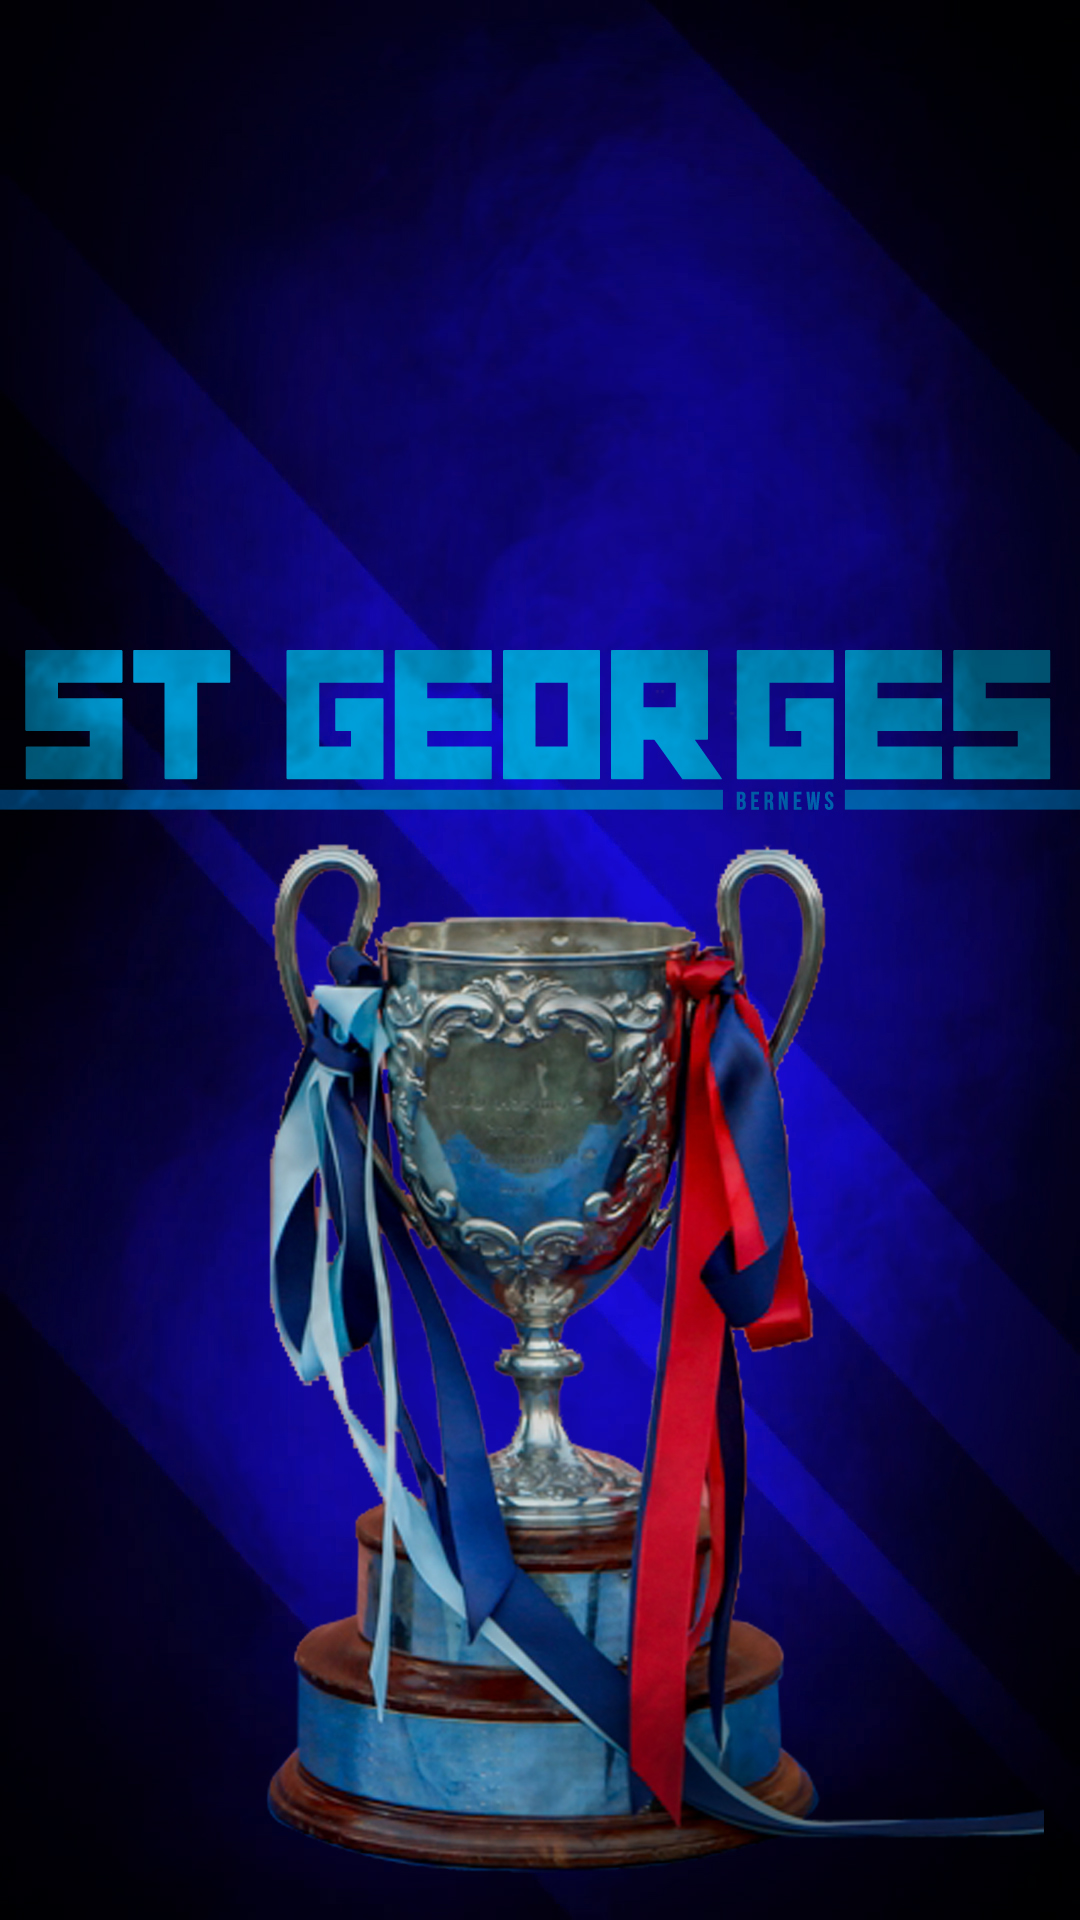 St Georges Cup Match Bermuda Phone Wallpaper by Bernews 2018 (2)